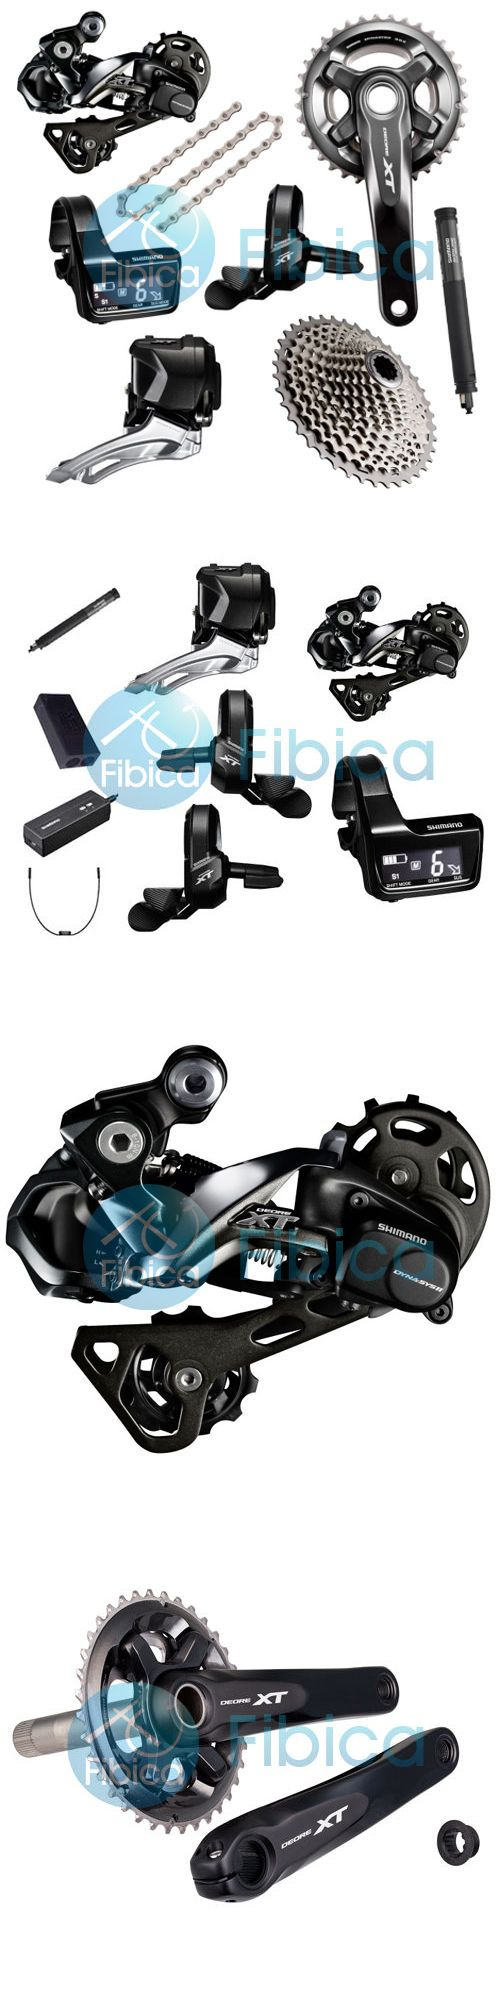 Build Kits and Gruppos 109120: New 2017 Shimano Deore Xt Di2 M8050 M8000 22-Speed Full Group Groupset 170 175Mm -> BUY IT NOW ONLY: $1449.99 on eBay!